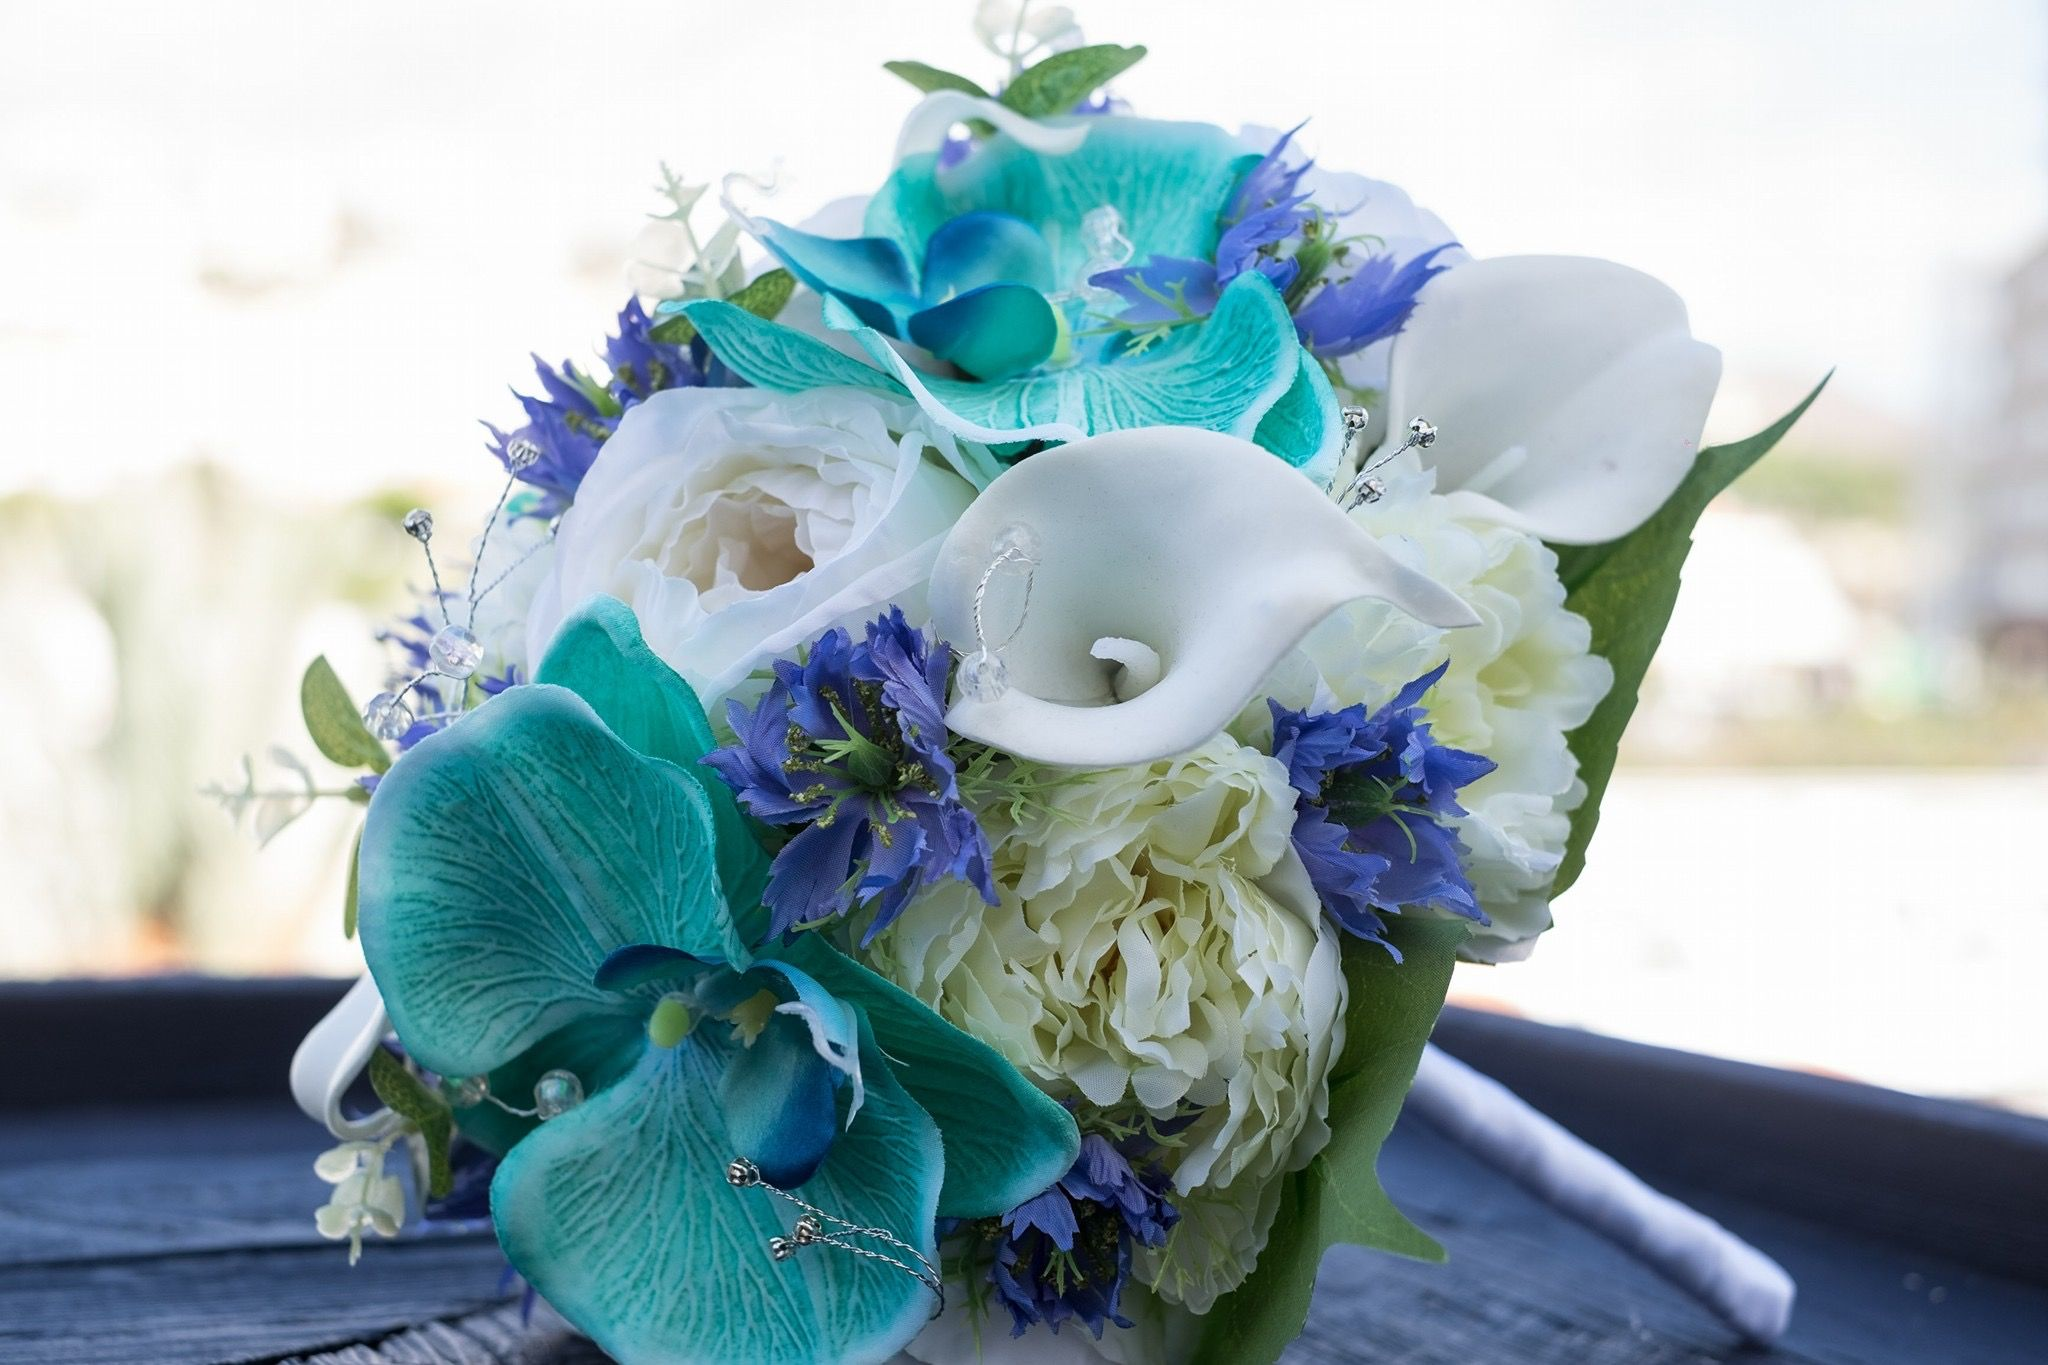 Bridal bouquet made with everlasting flowers phalaenopsis orchids bridal bouquet made with everlasting flowers phalaenopsis orchids calla lilies nigella and roses izmirmasajfo